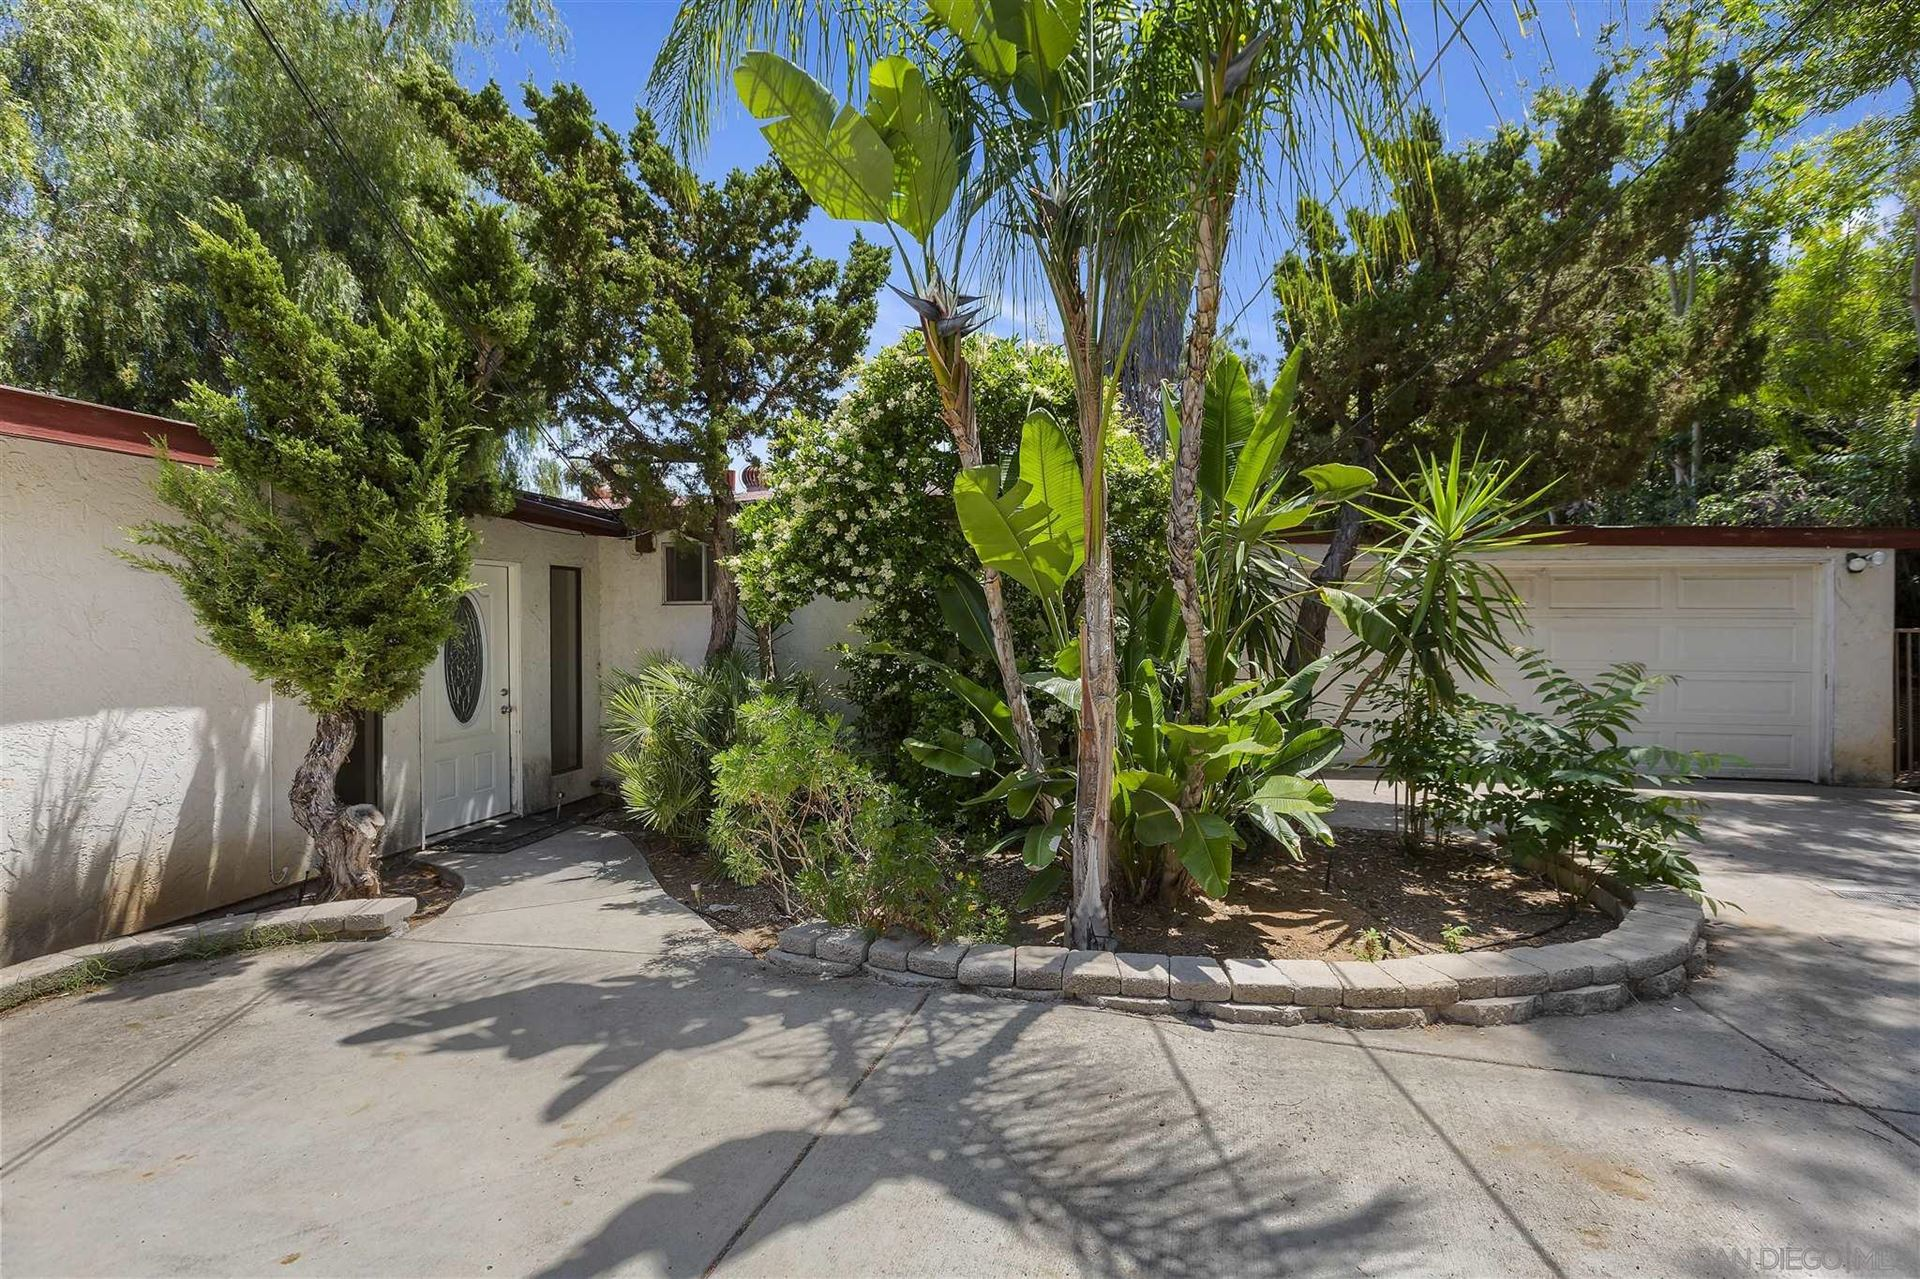 Photo of 9430 Riverview Ave, Lakeside, CA 92040 (MLS # 210012870)